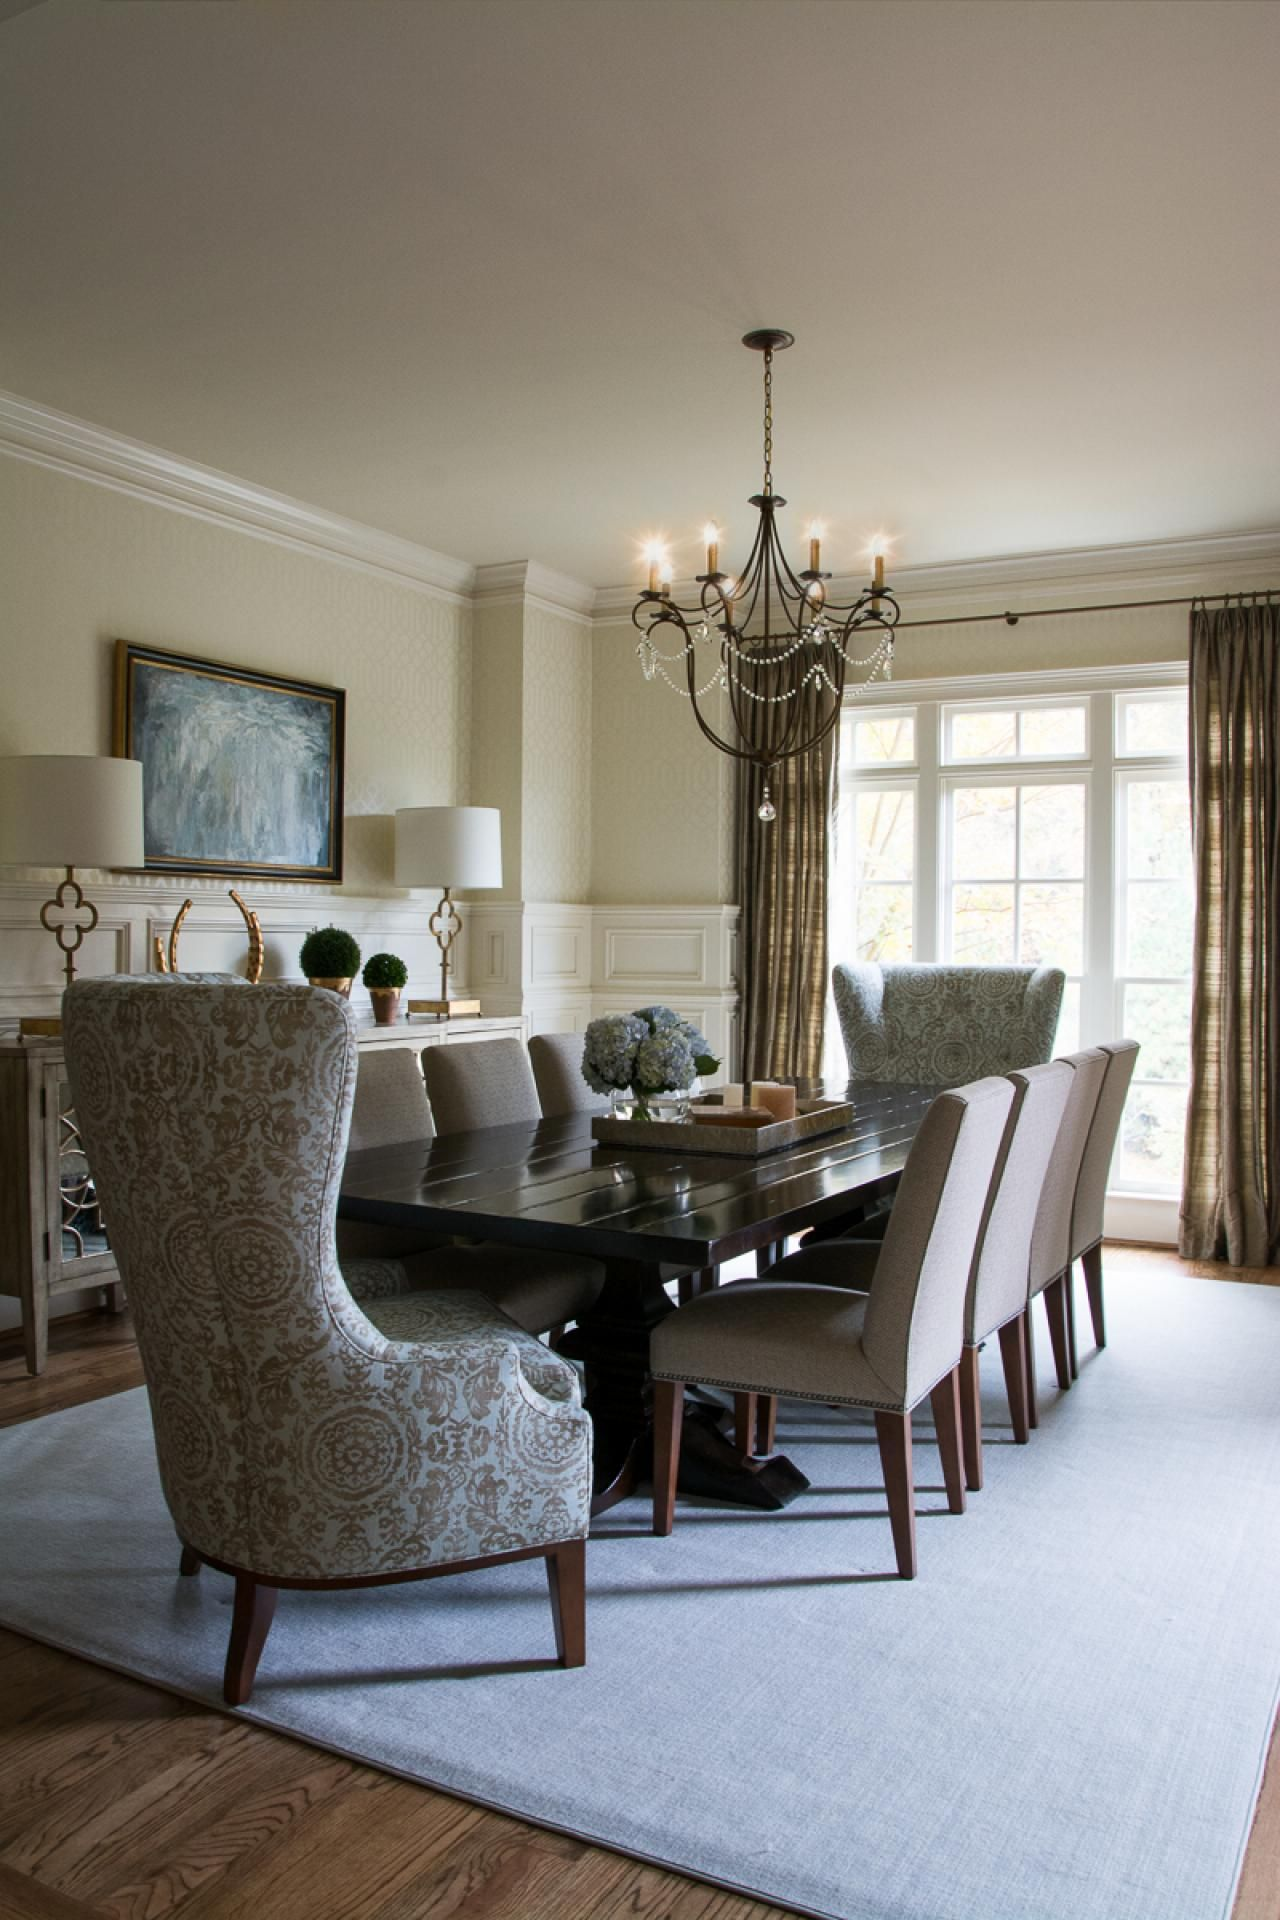 This Glamorous Dining Room Has A Large Dining Table That Holds 10 Mesmerizing Size Of Dining Room Table For 10 Inspiration Design